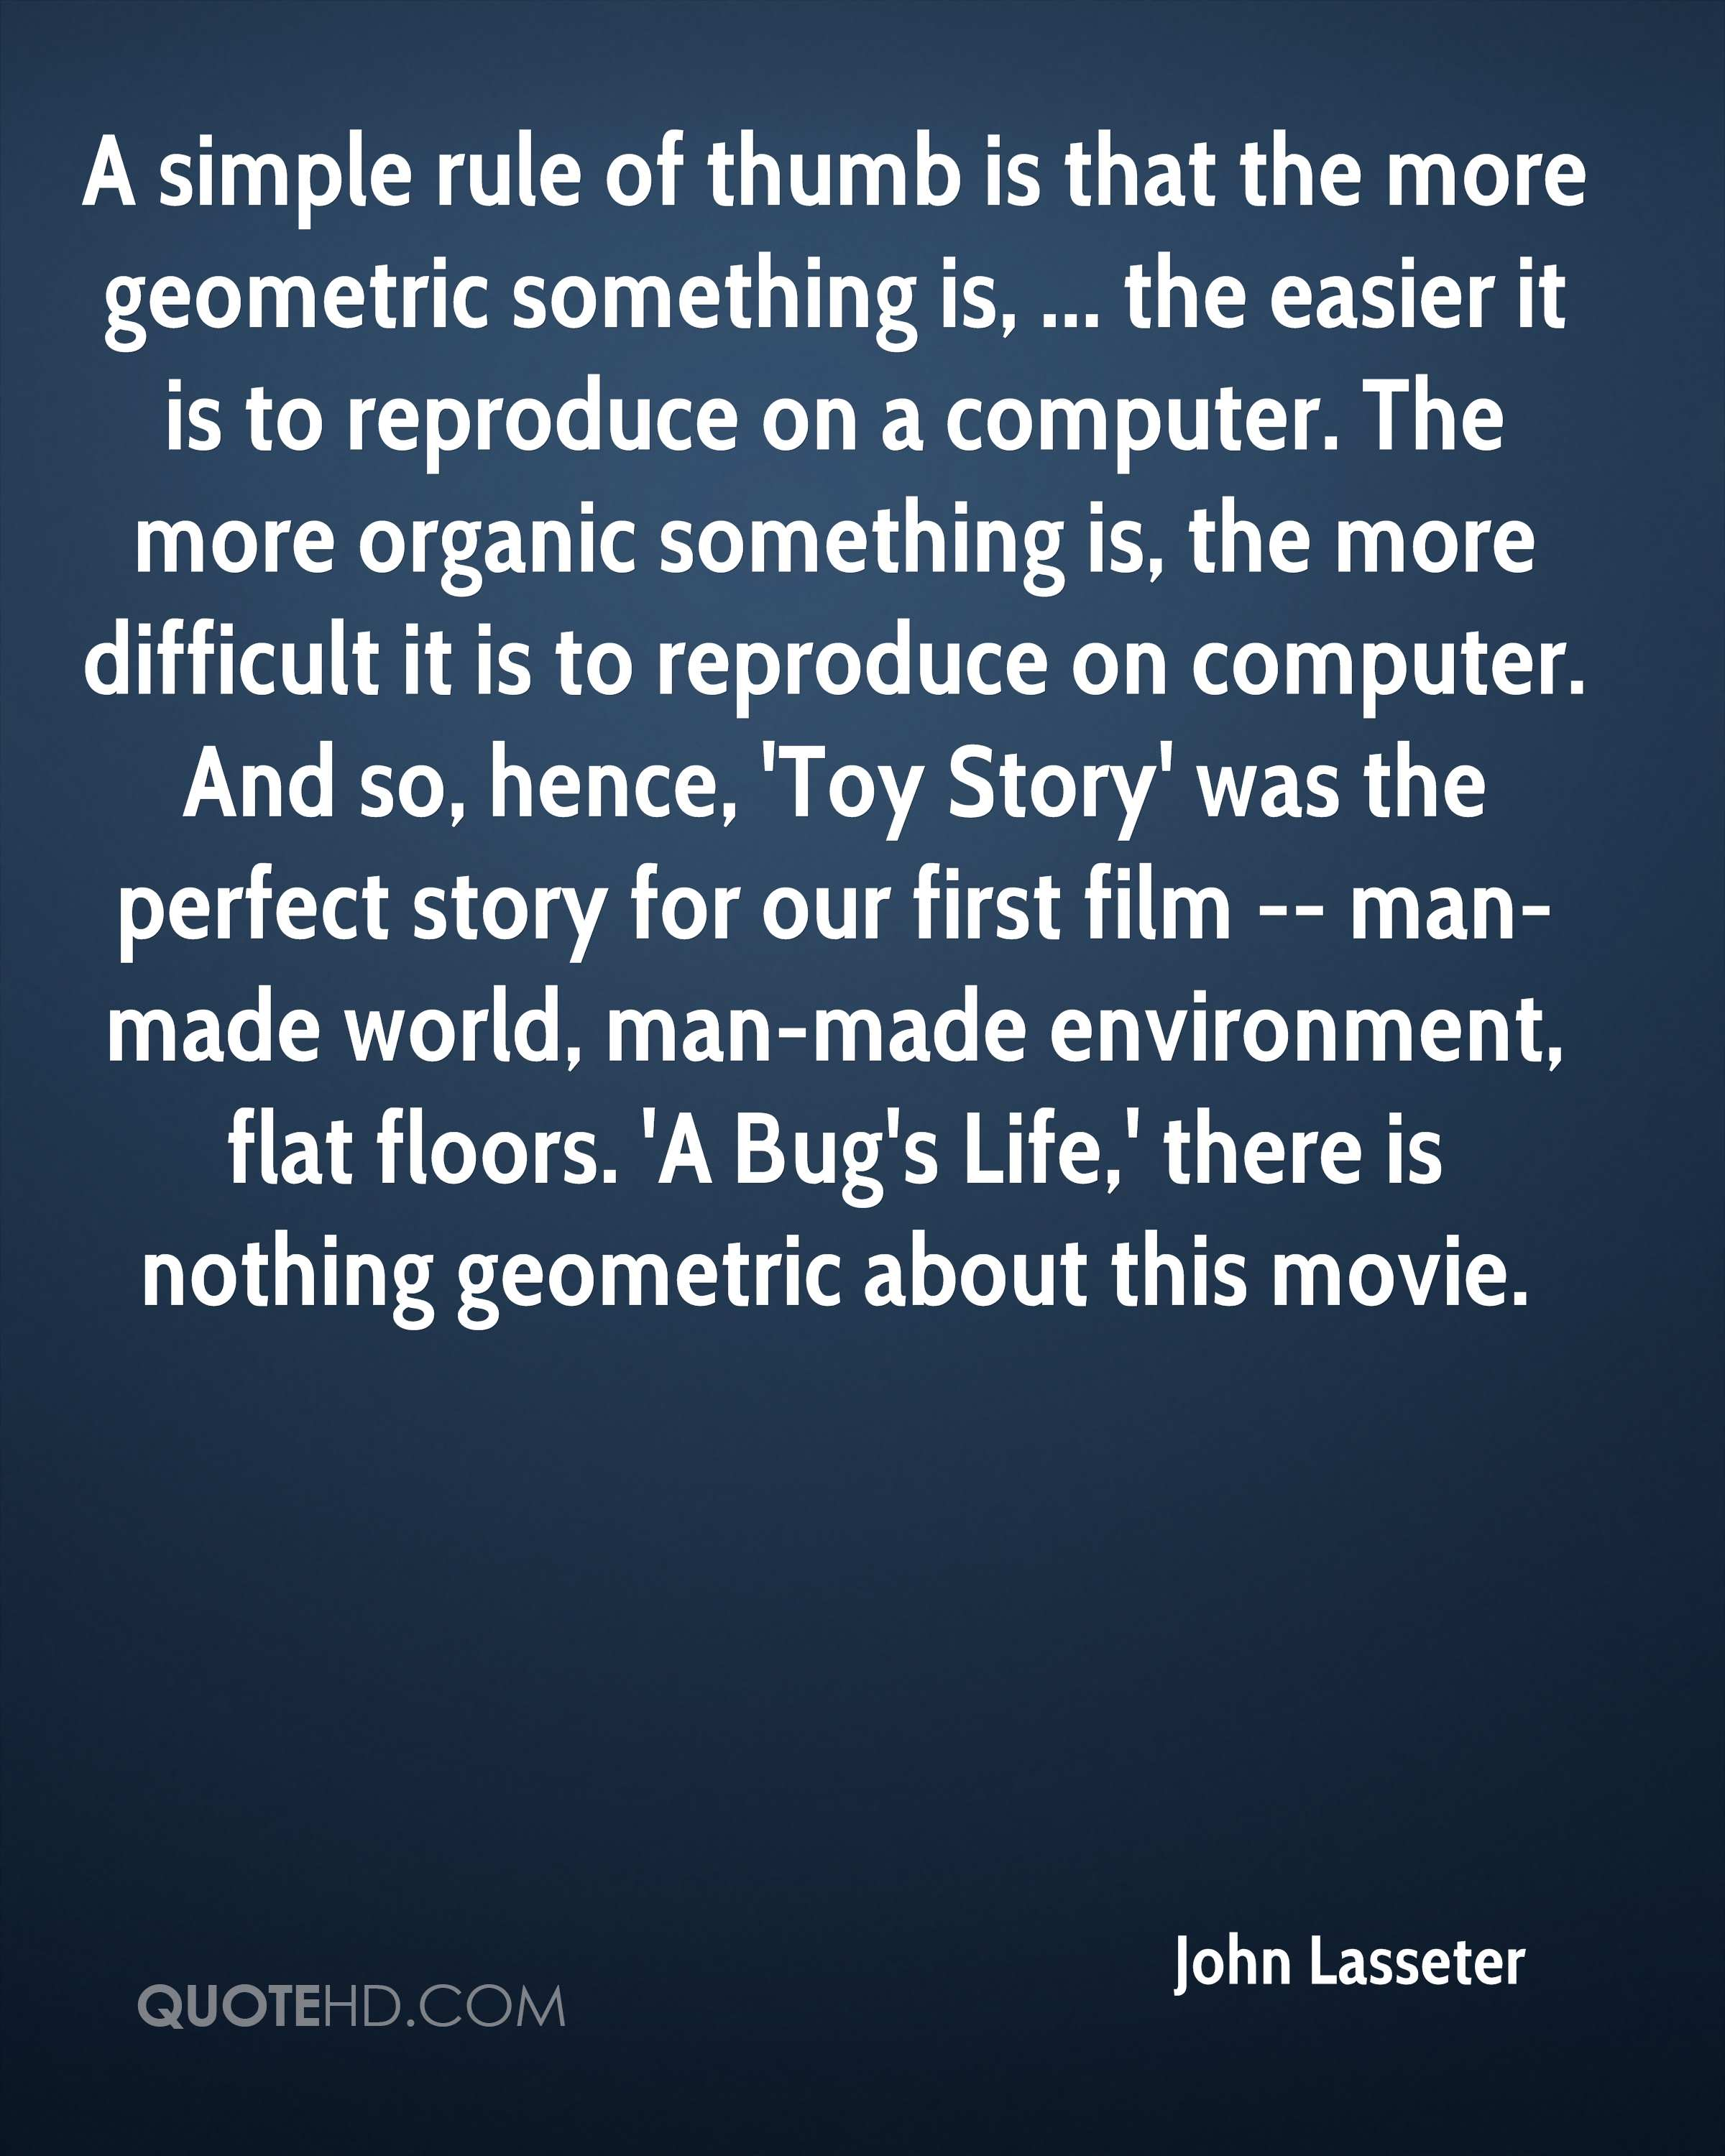 A simple rule of thumb is that the more geometric something is, ... the easier it is to reproduce on a computer. The more organic something is, the more difficult it is to reproduce on computer. And so, hence, 'Toy Story' was the perfect story for our first film -- man-made world, man-made environment, flat floors. 'A Bug's Life,' there is nothing geometric about this movie.